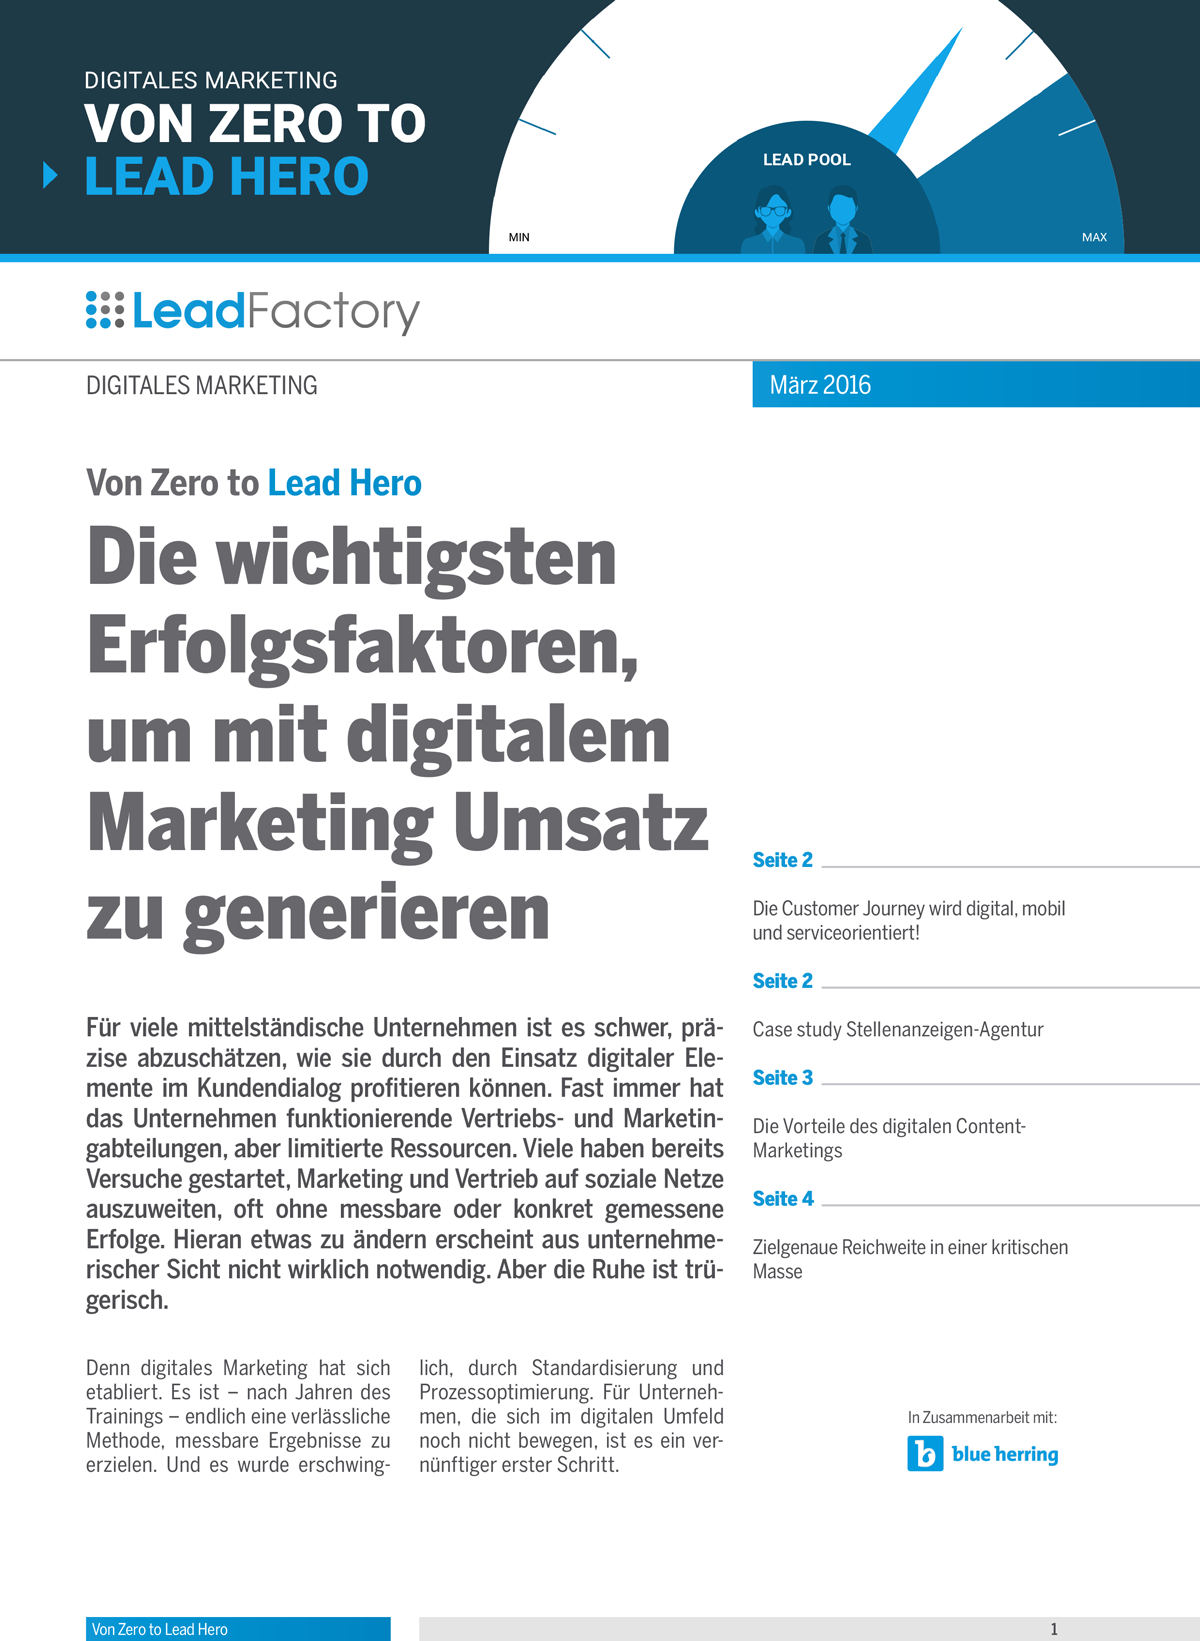 "Kampagne_whitepaper_blue herring_""Digitales Marketing"" zum Thema Customer Journey"